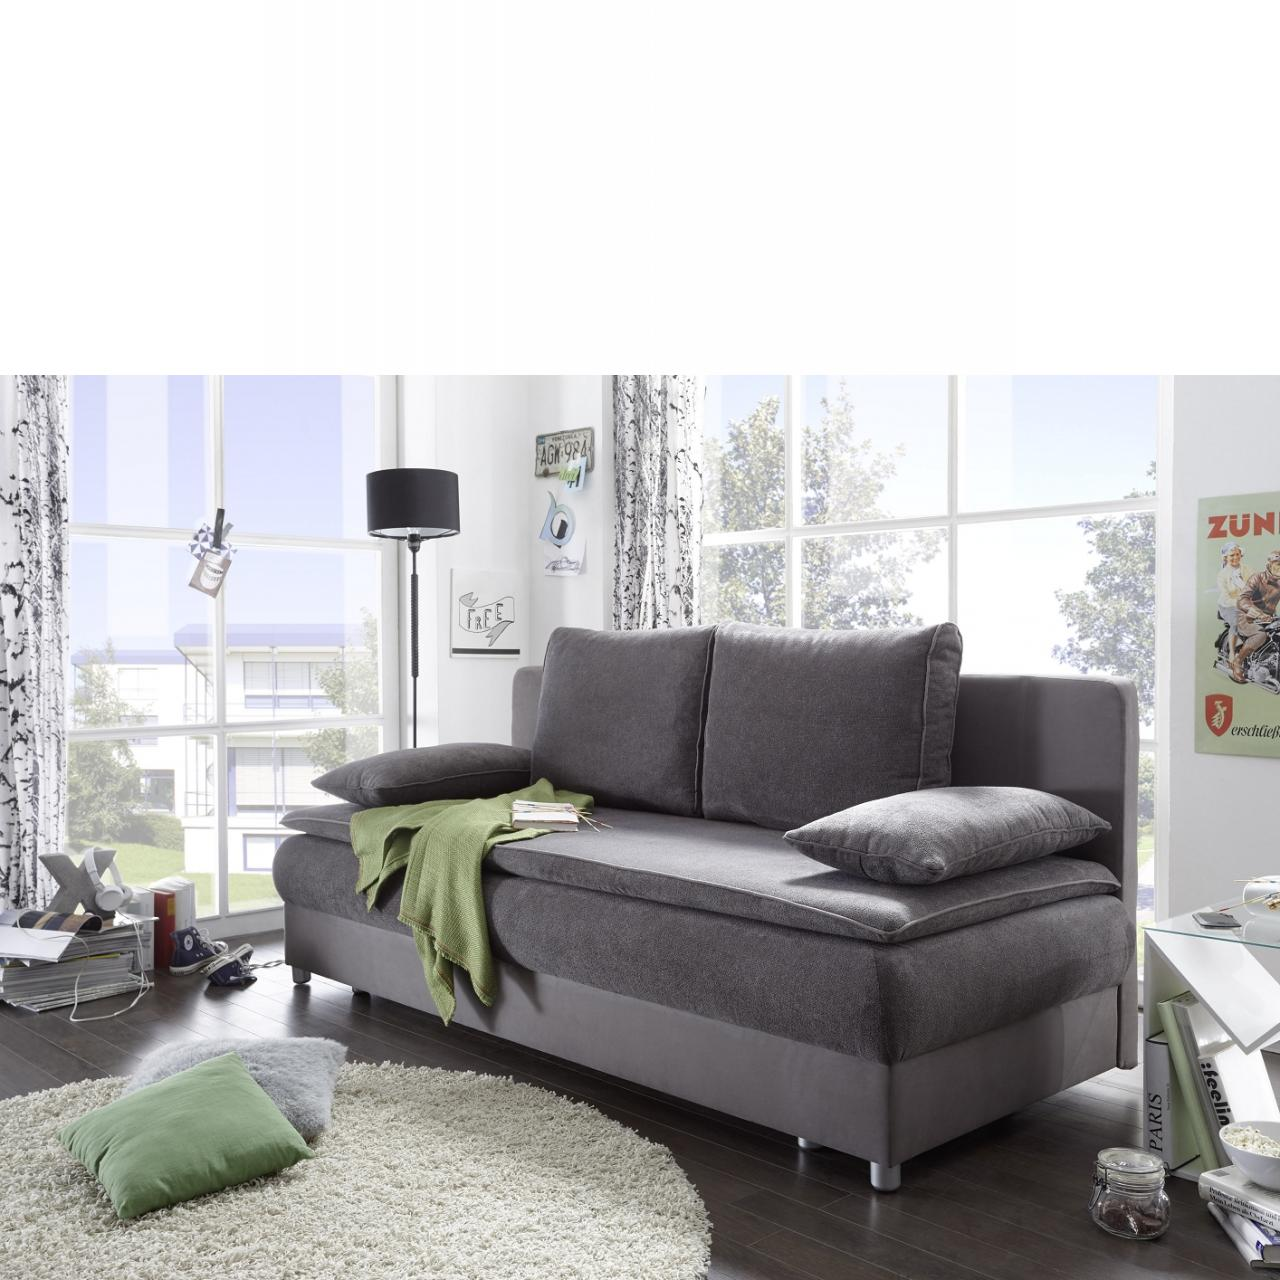 schlafsofa laura schlafsofa polsterm bel m bel j hnichen center gmbh. Black Bedroom Furniture Sets. Home Design Ideas